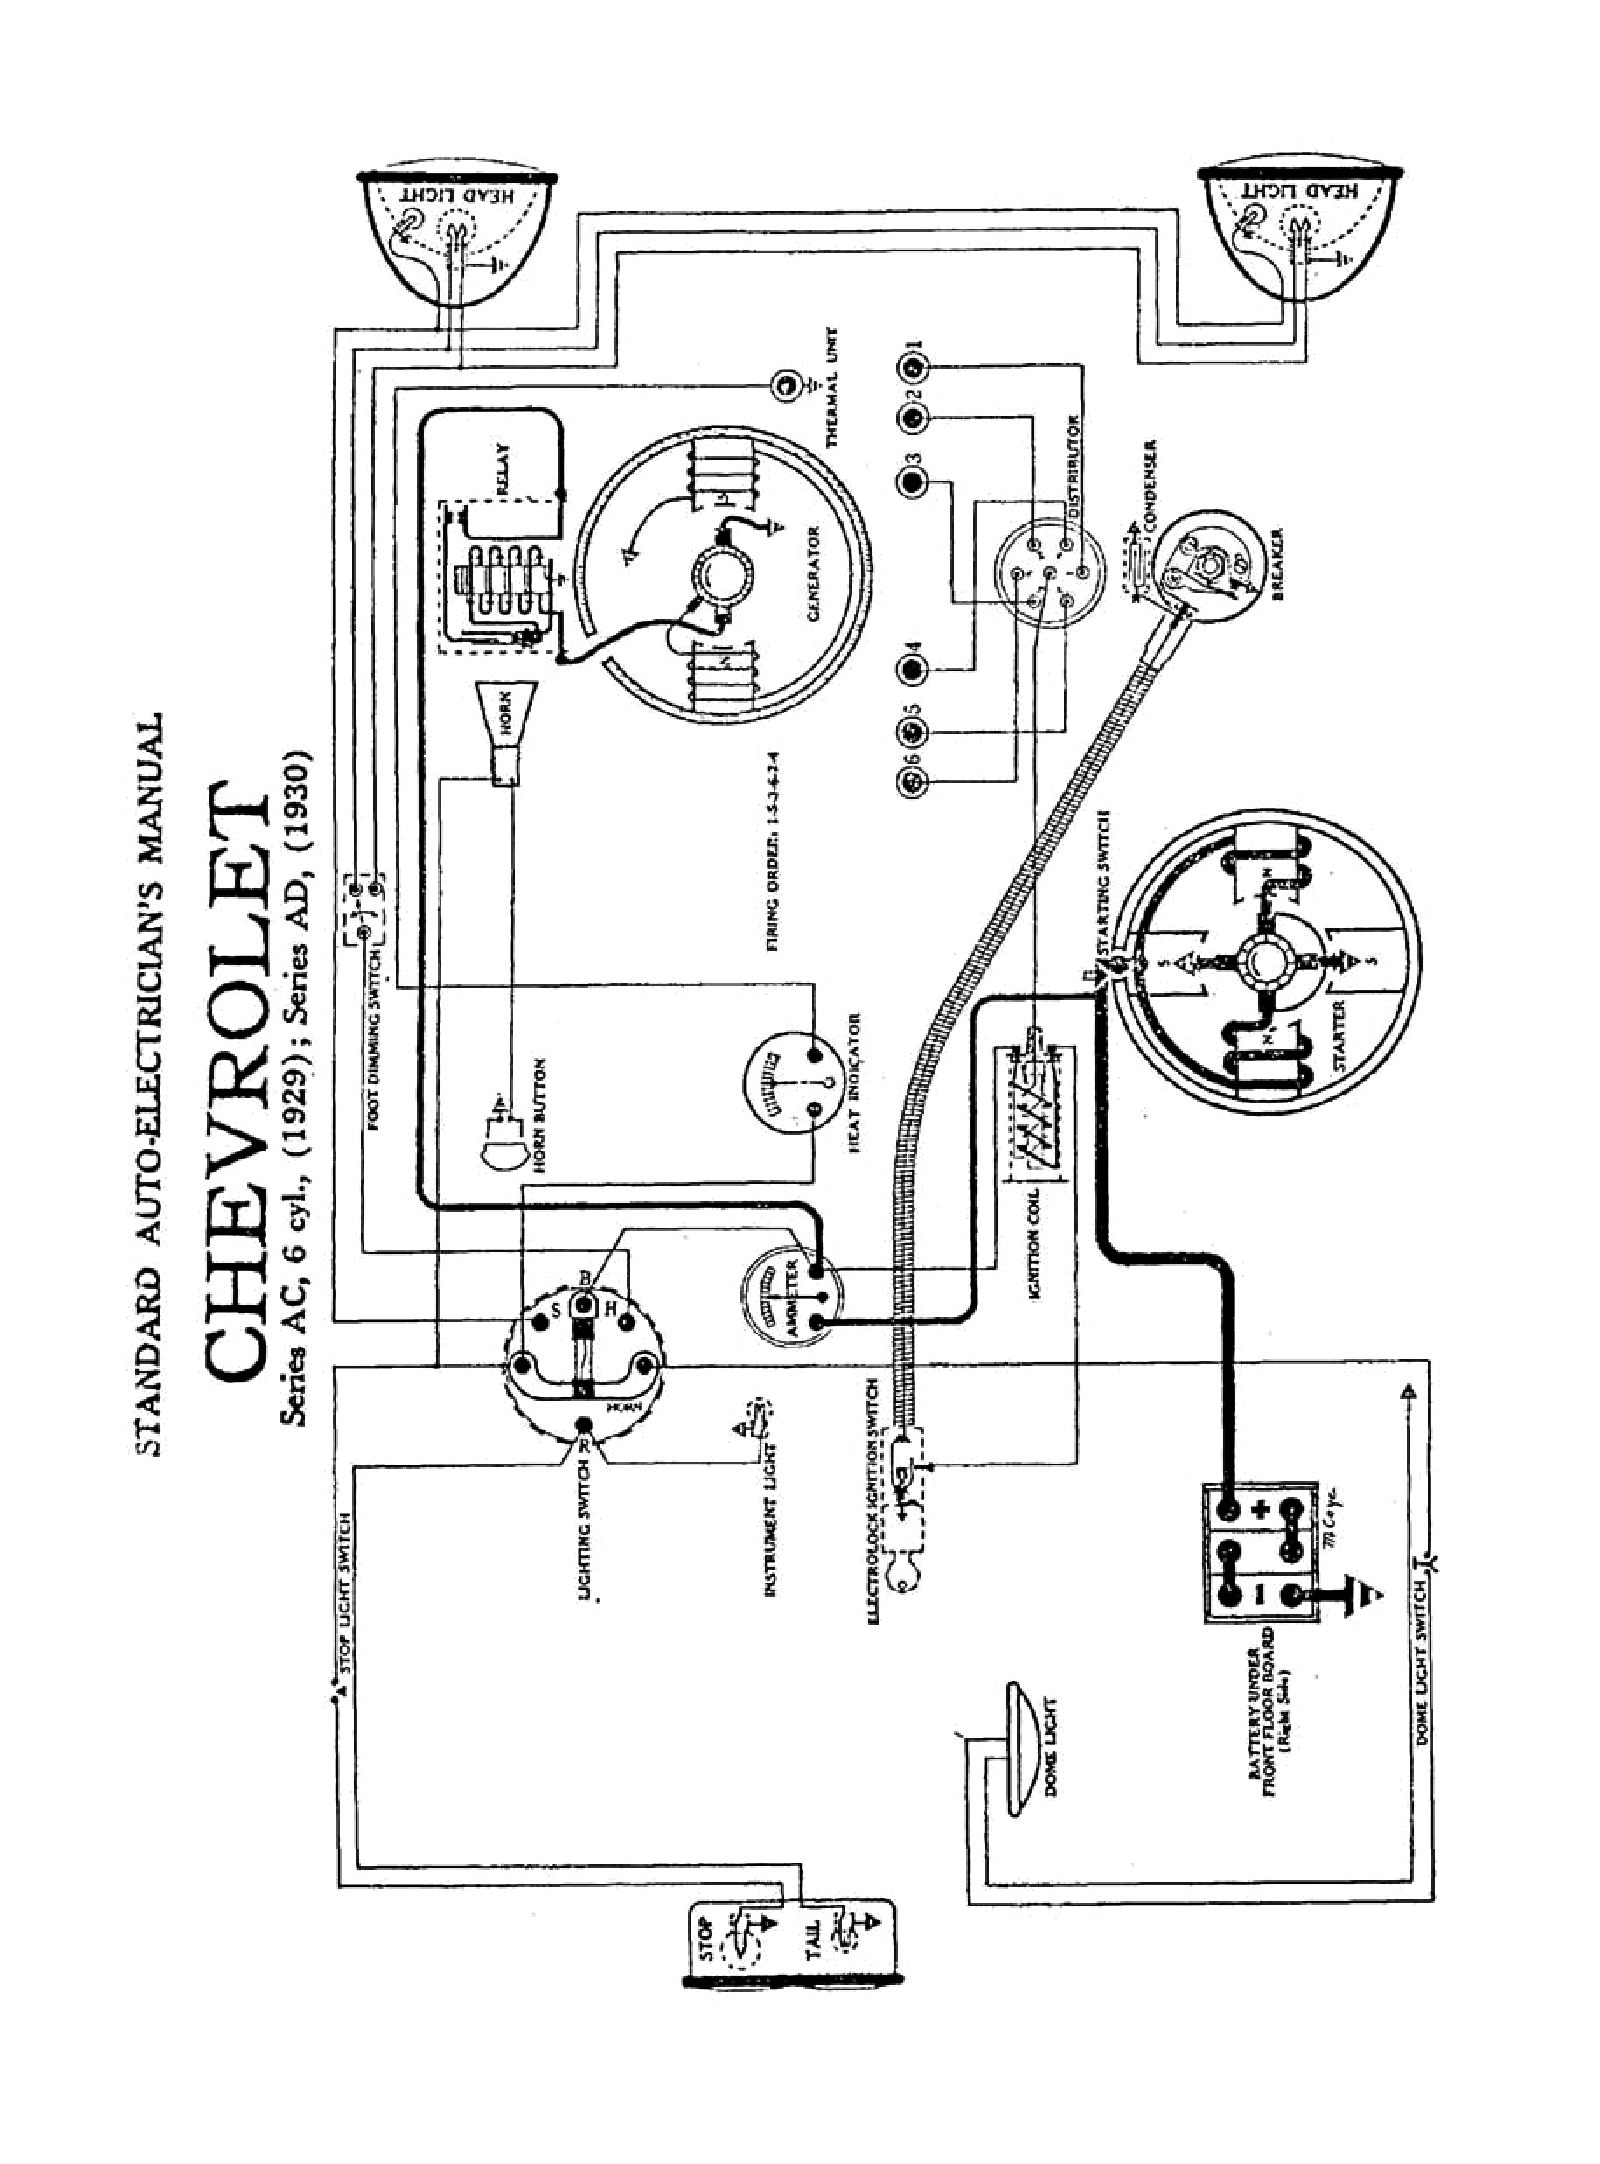 farmall international tractor wiring diagram with Hitachi Alternator Wiring Diagram For Farmall Cub on Hitachi Alternator Wiring Diagram For Farmall Cub together with Farmall F4 Mag o Parts Diagram in addition Farmall 100 Parts Diagram further Kubota Hydraulics Filter Diagram also Wiring Harness For Farmall M.